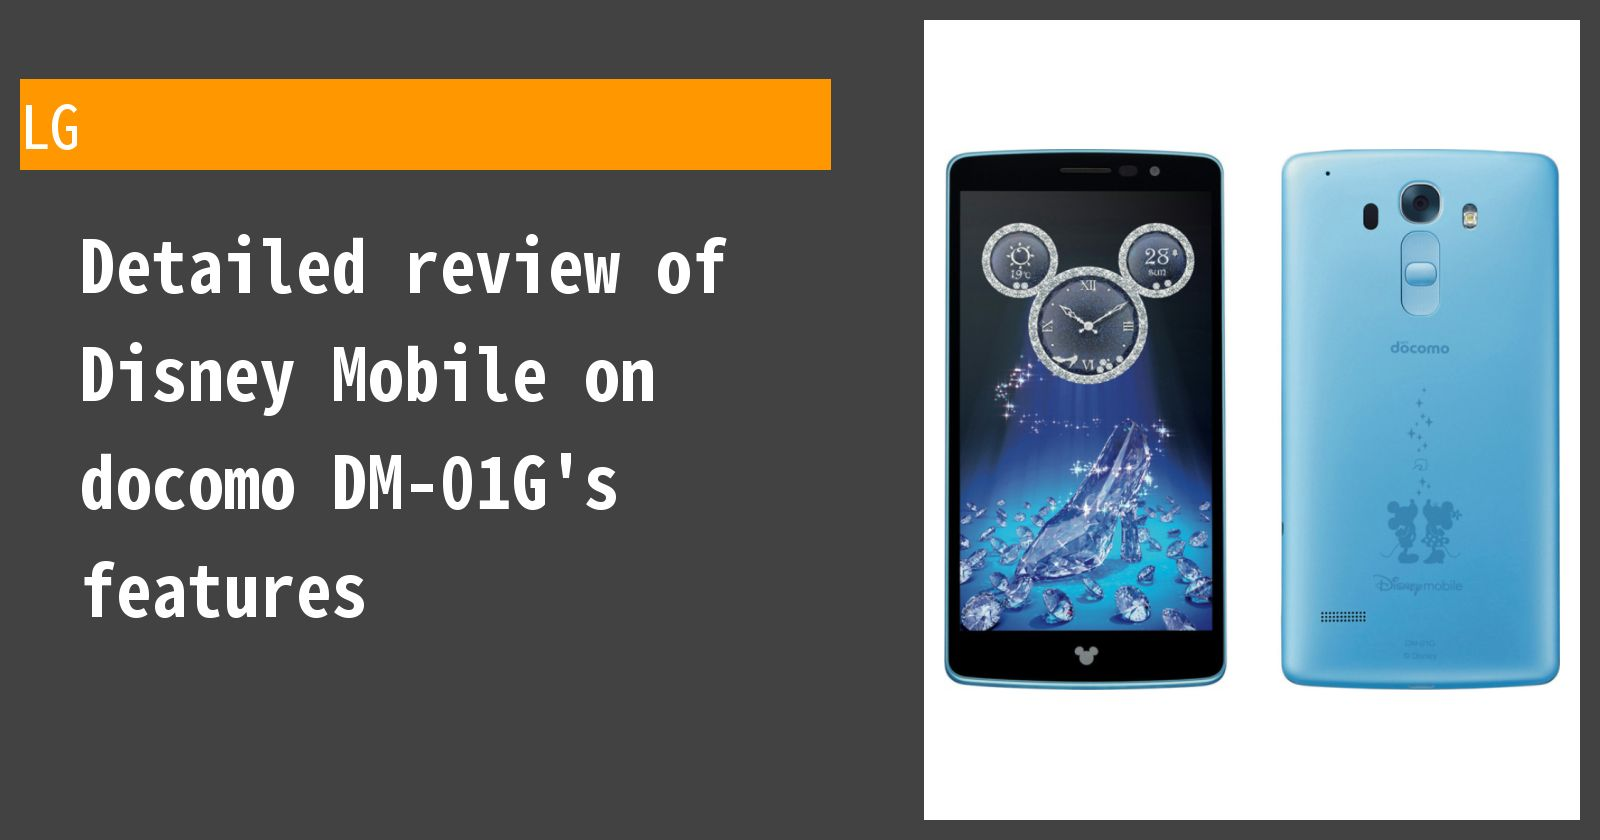 Detailed review of Disney Mobile on docomo DM-01G's features